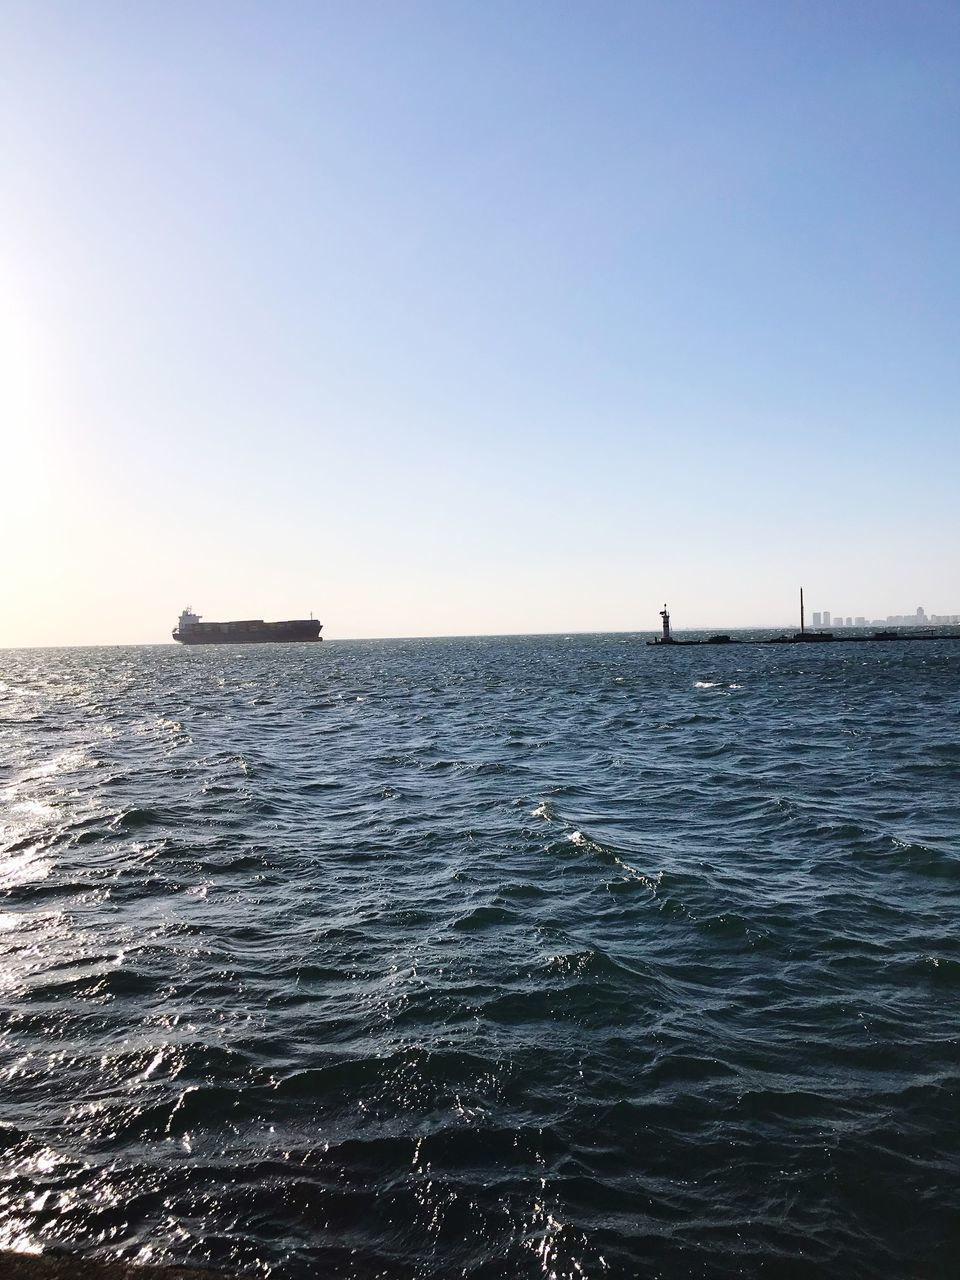 sea, sky, water, scenics - nature, clear sky, beauty in nature, waterfront, tranquil scene, nature, copy space, nautical vessel, tranquility, horizon, horizon over water, rippled, no people, transportation, blue, day, outdoors, sailboat